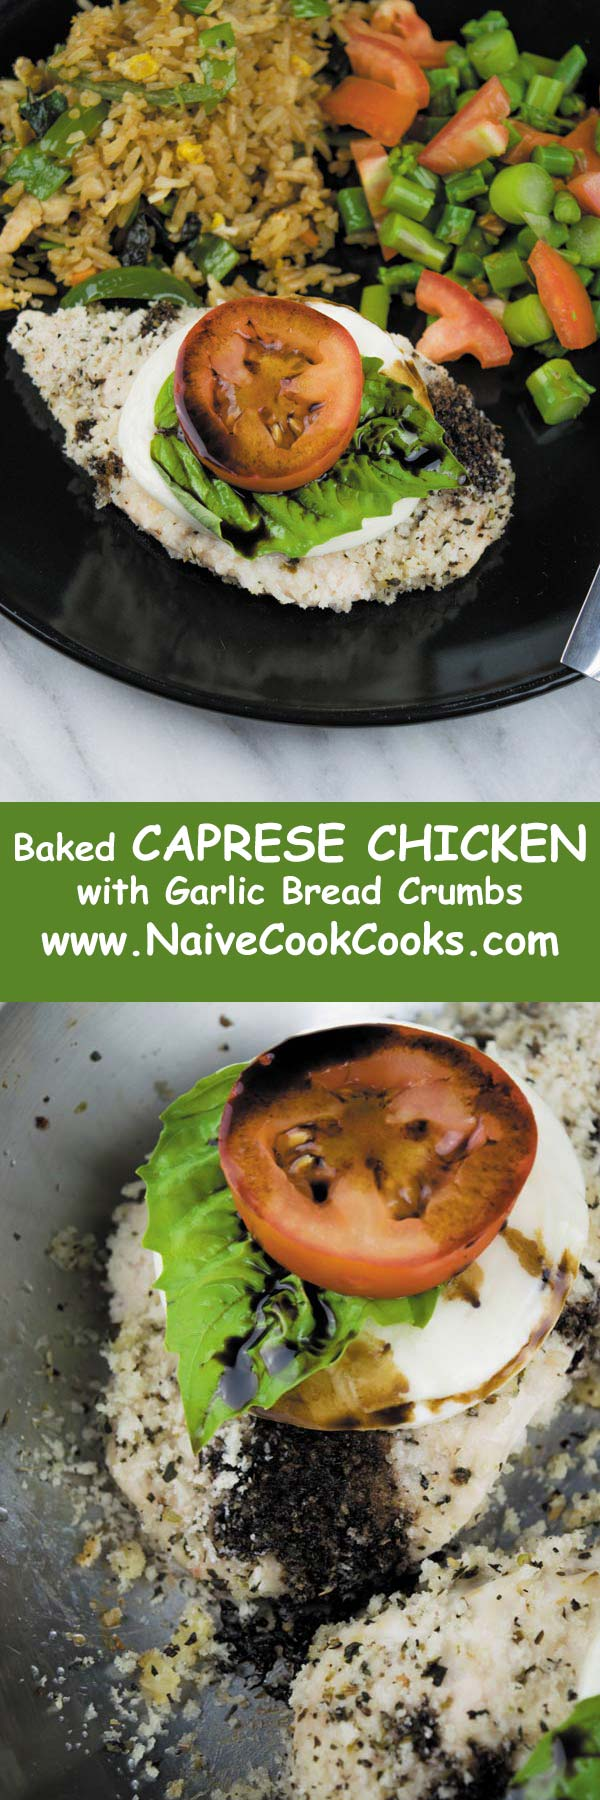 baked caprese chicken long pin